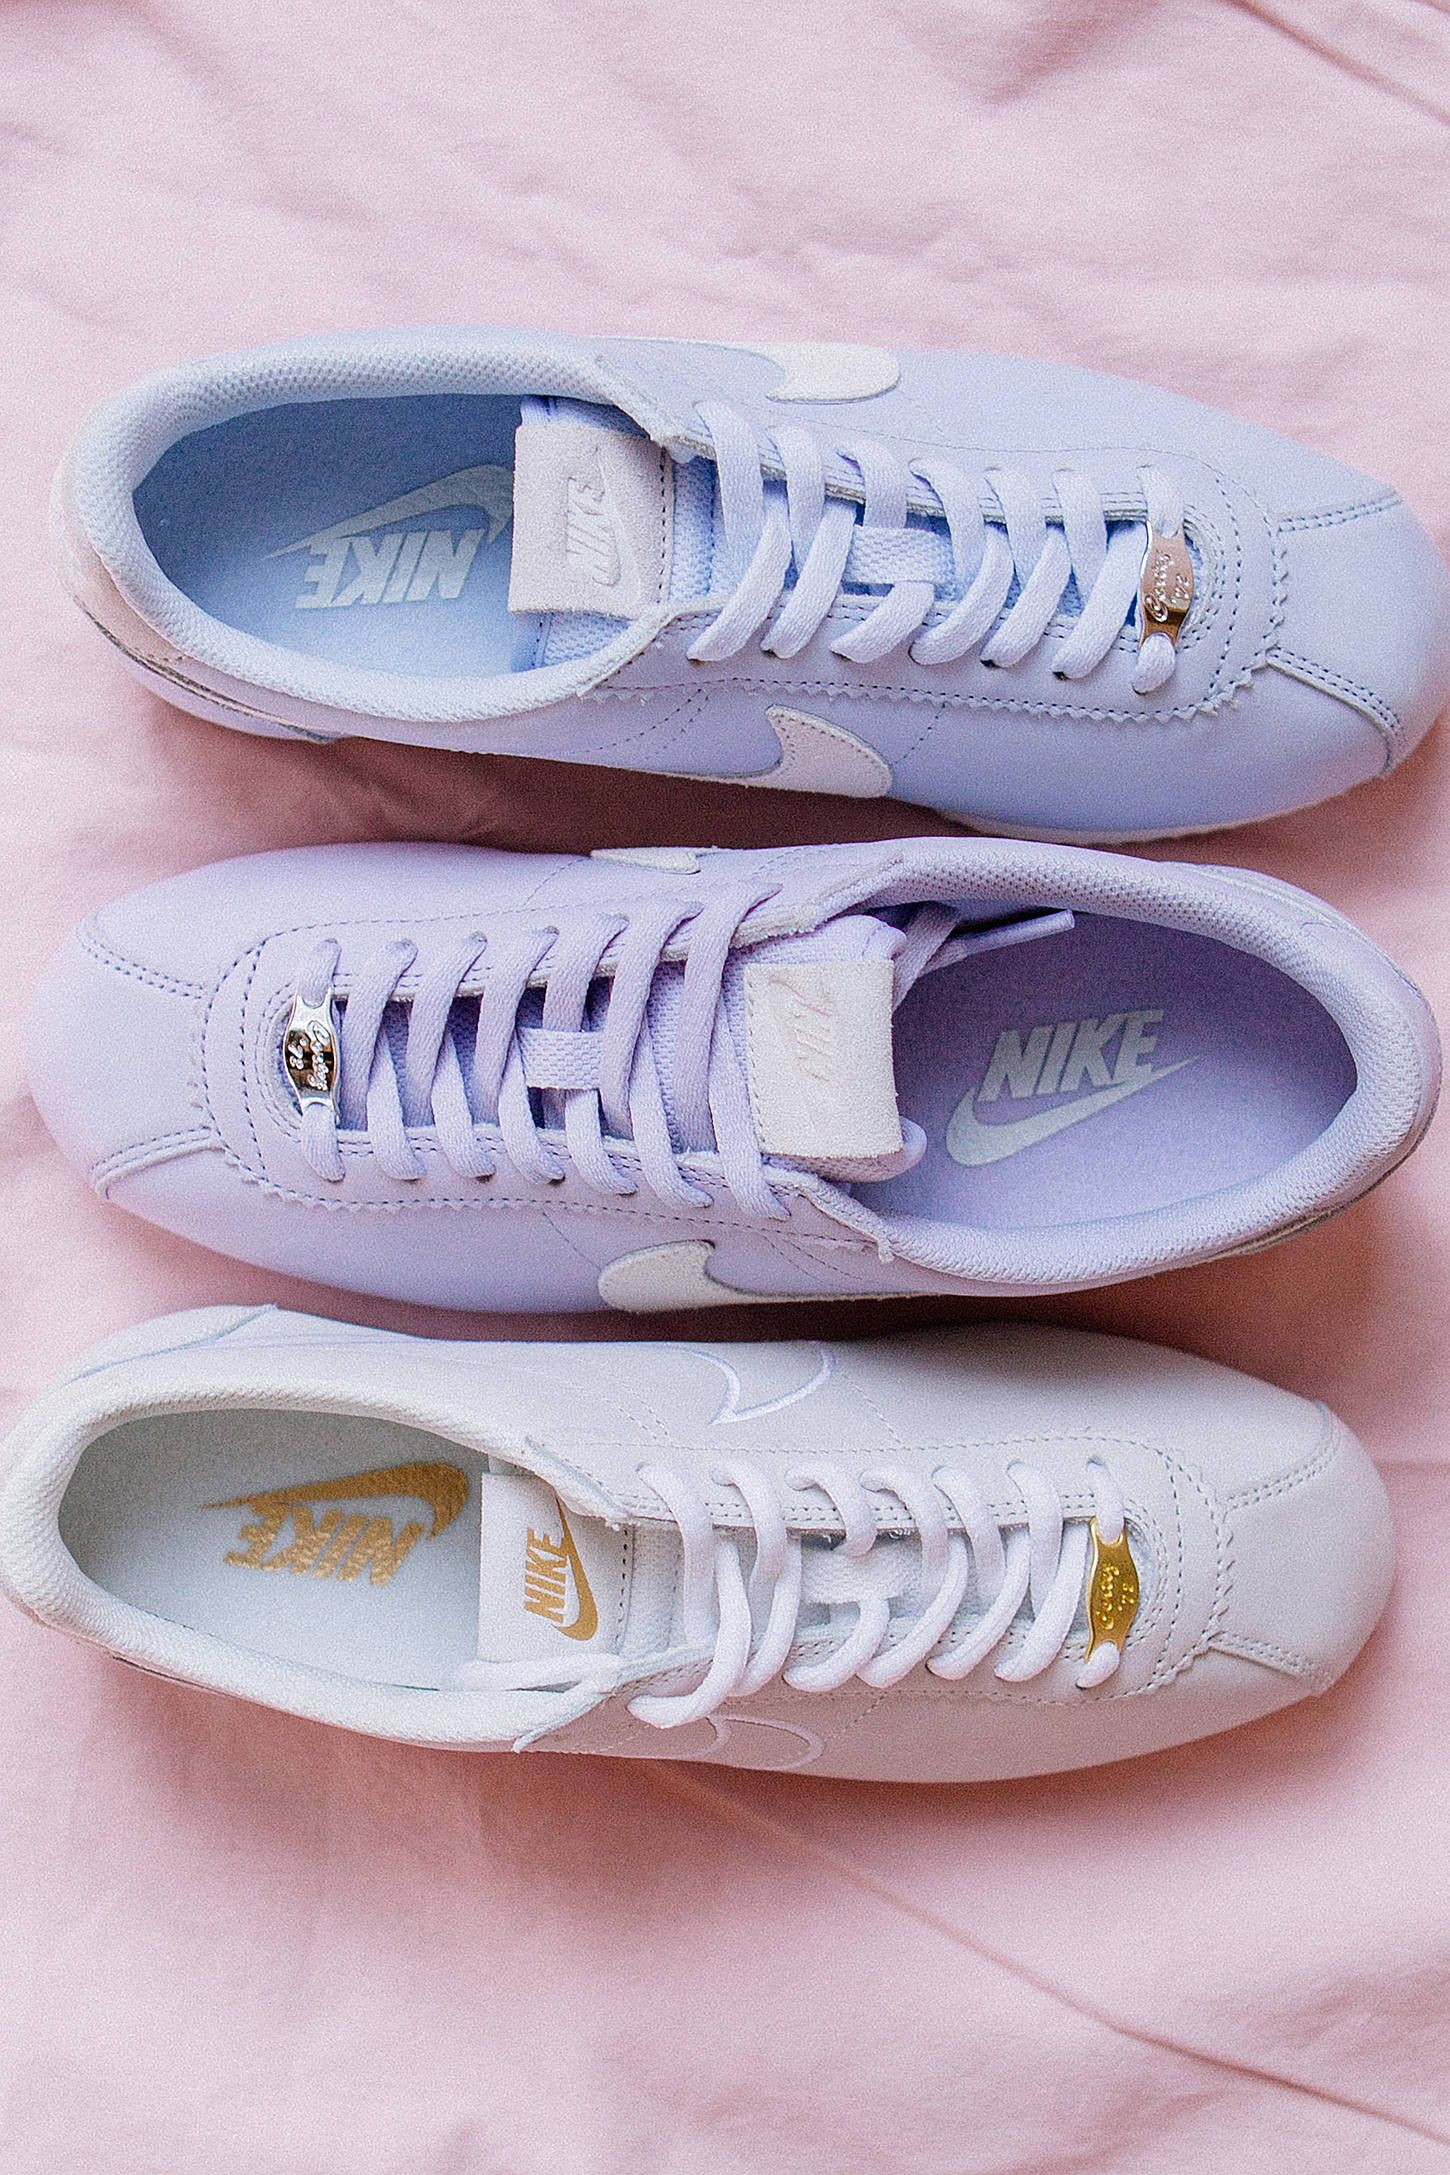 low priced 71d31 8fa11 Nike Classic Cortez Pastel Sneaker   Urban Outfitters